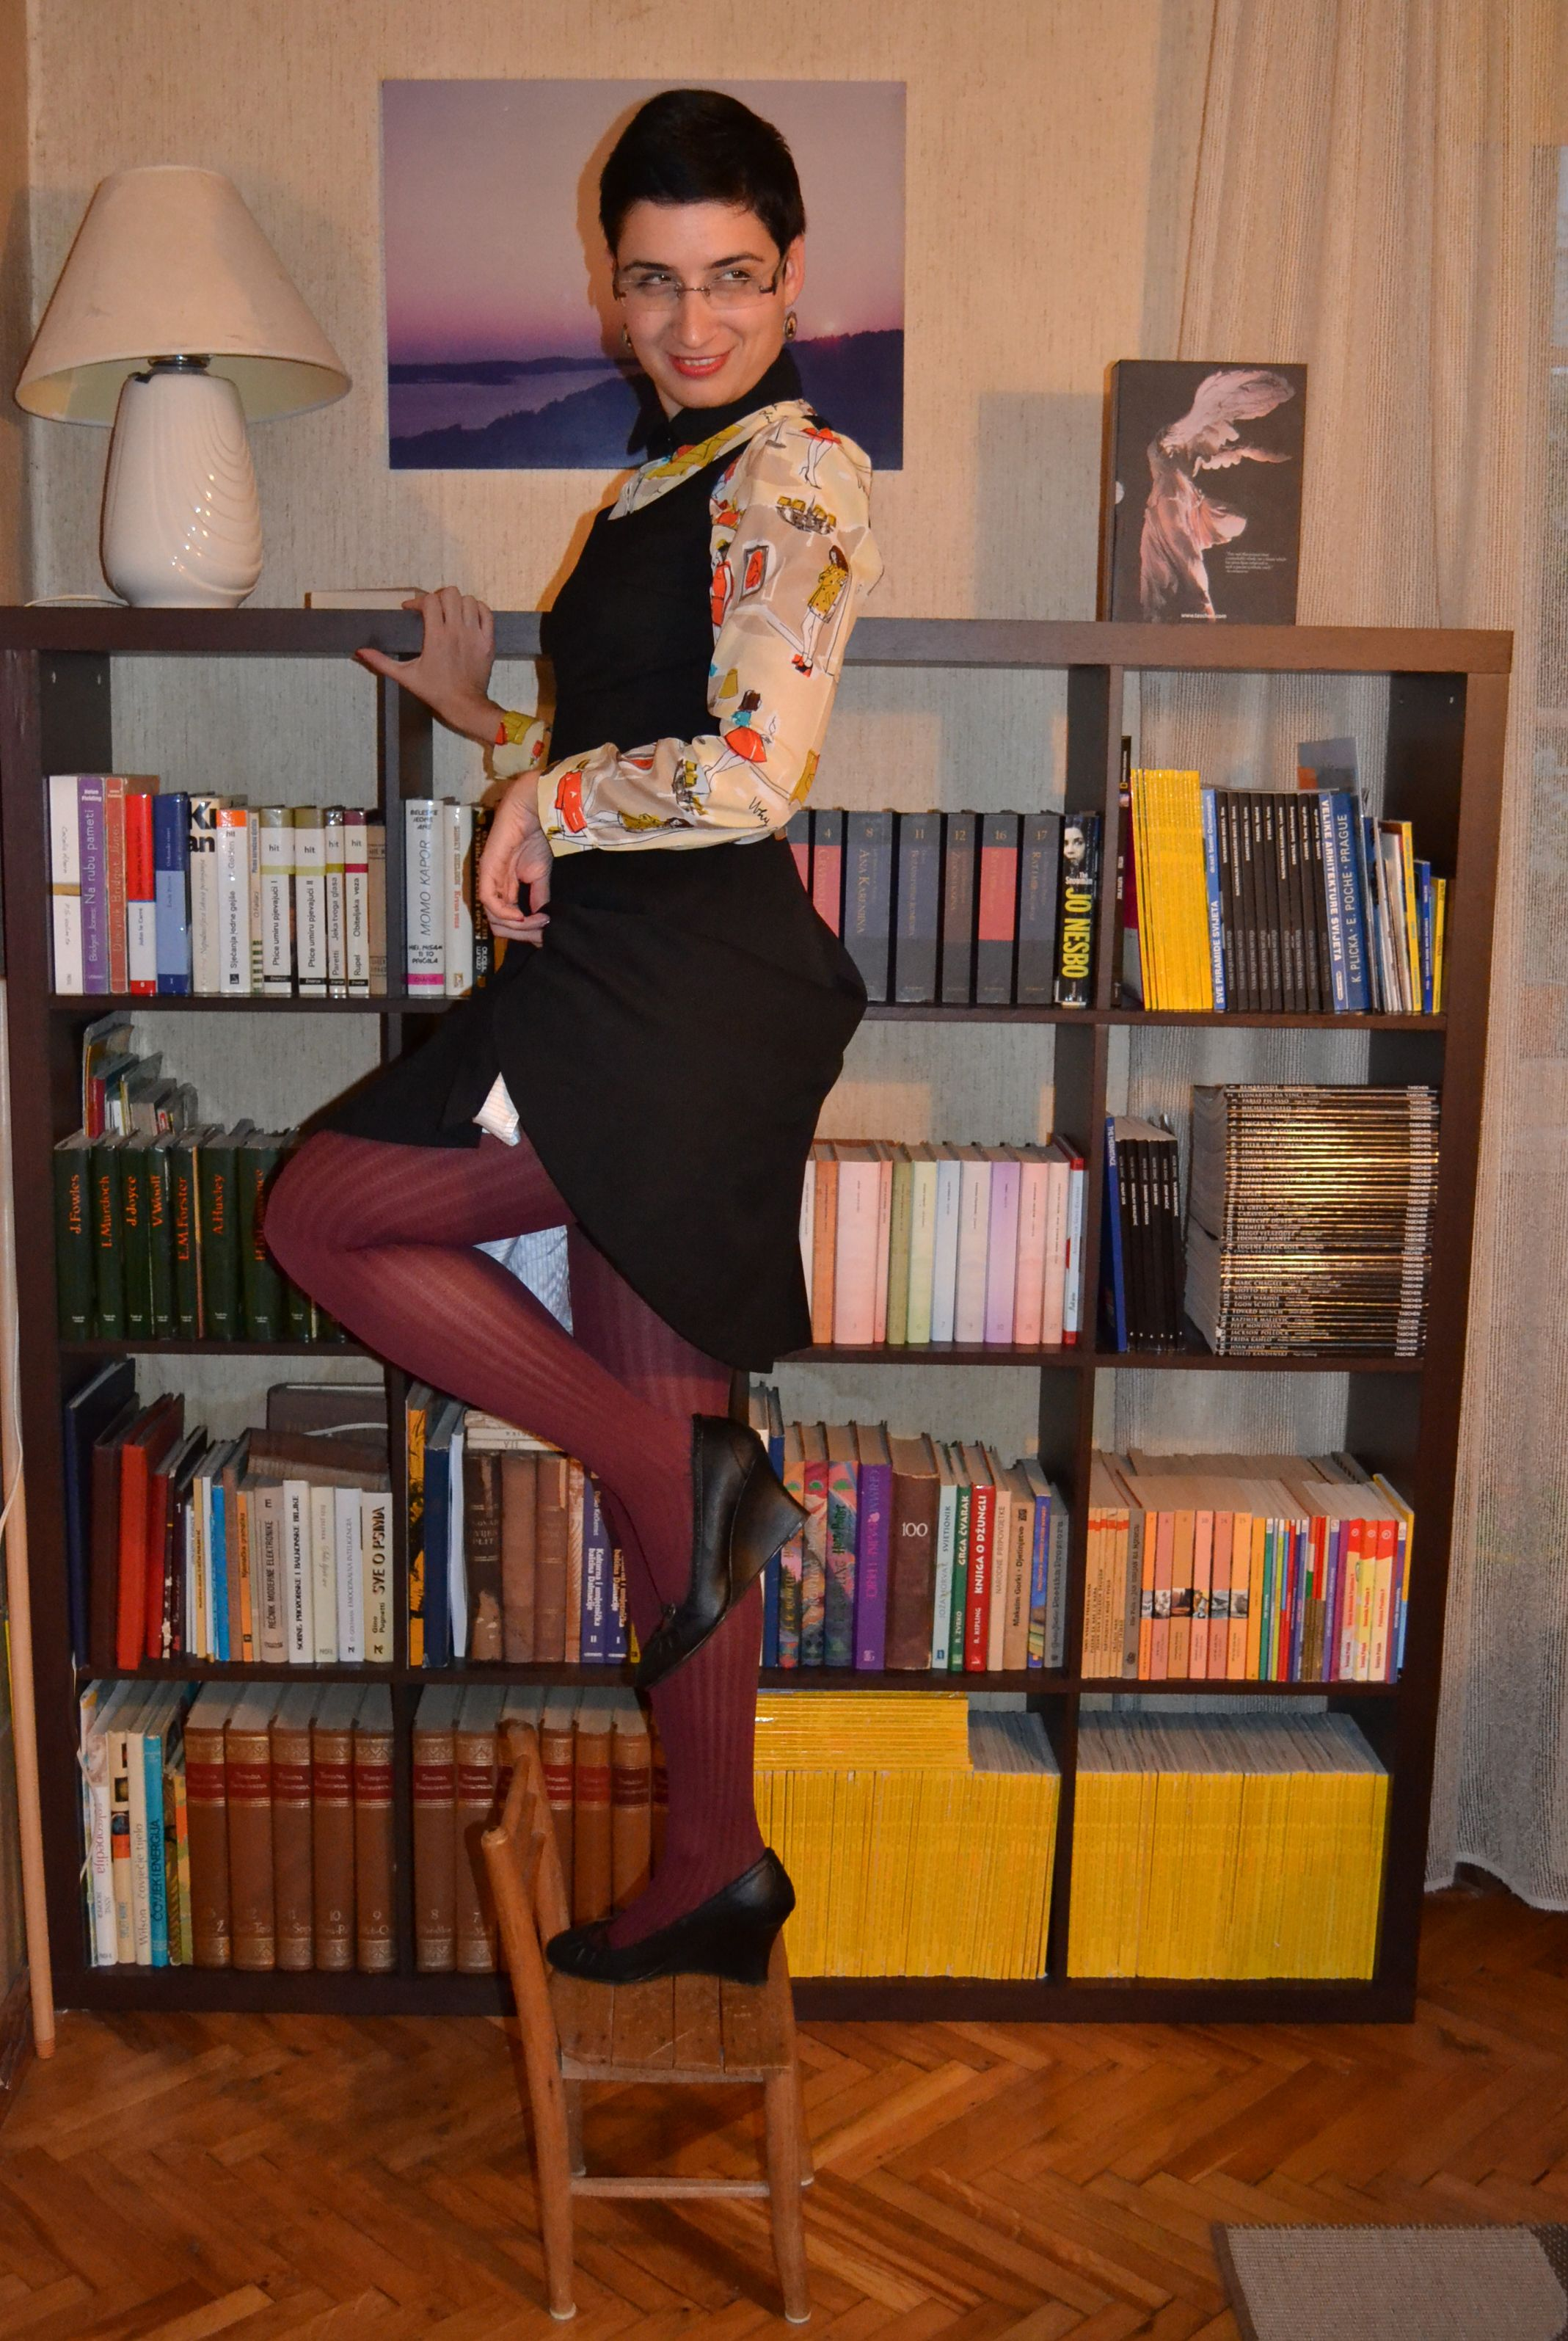 Librarian in pantyhose